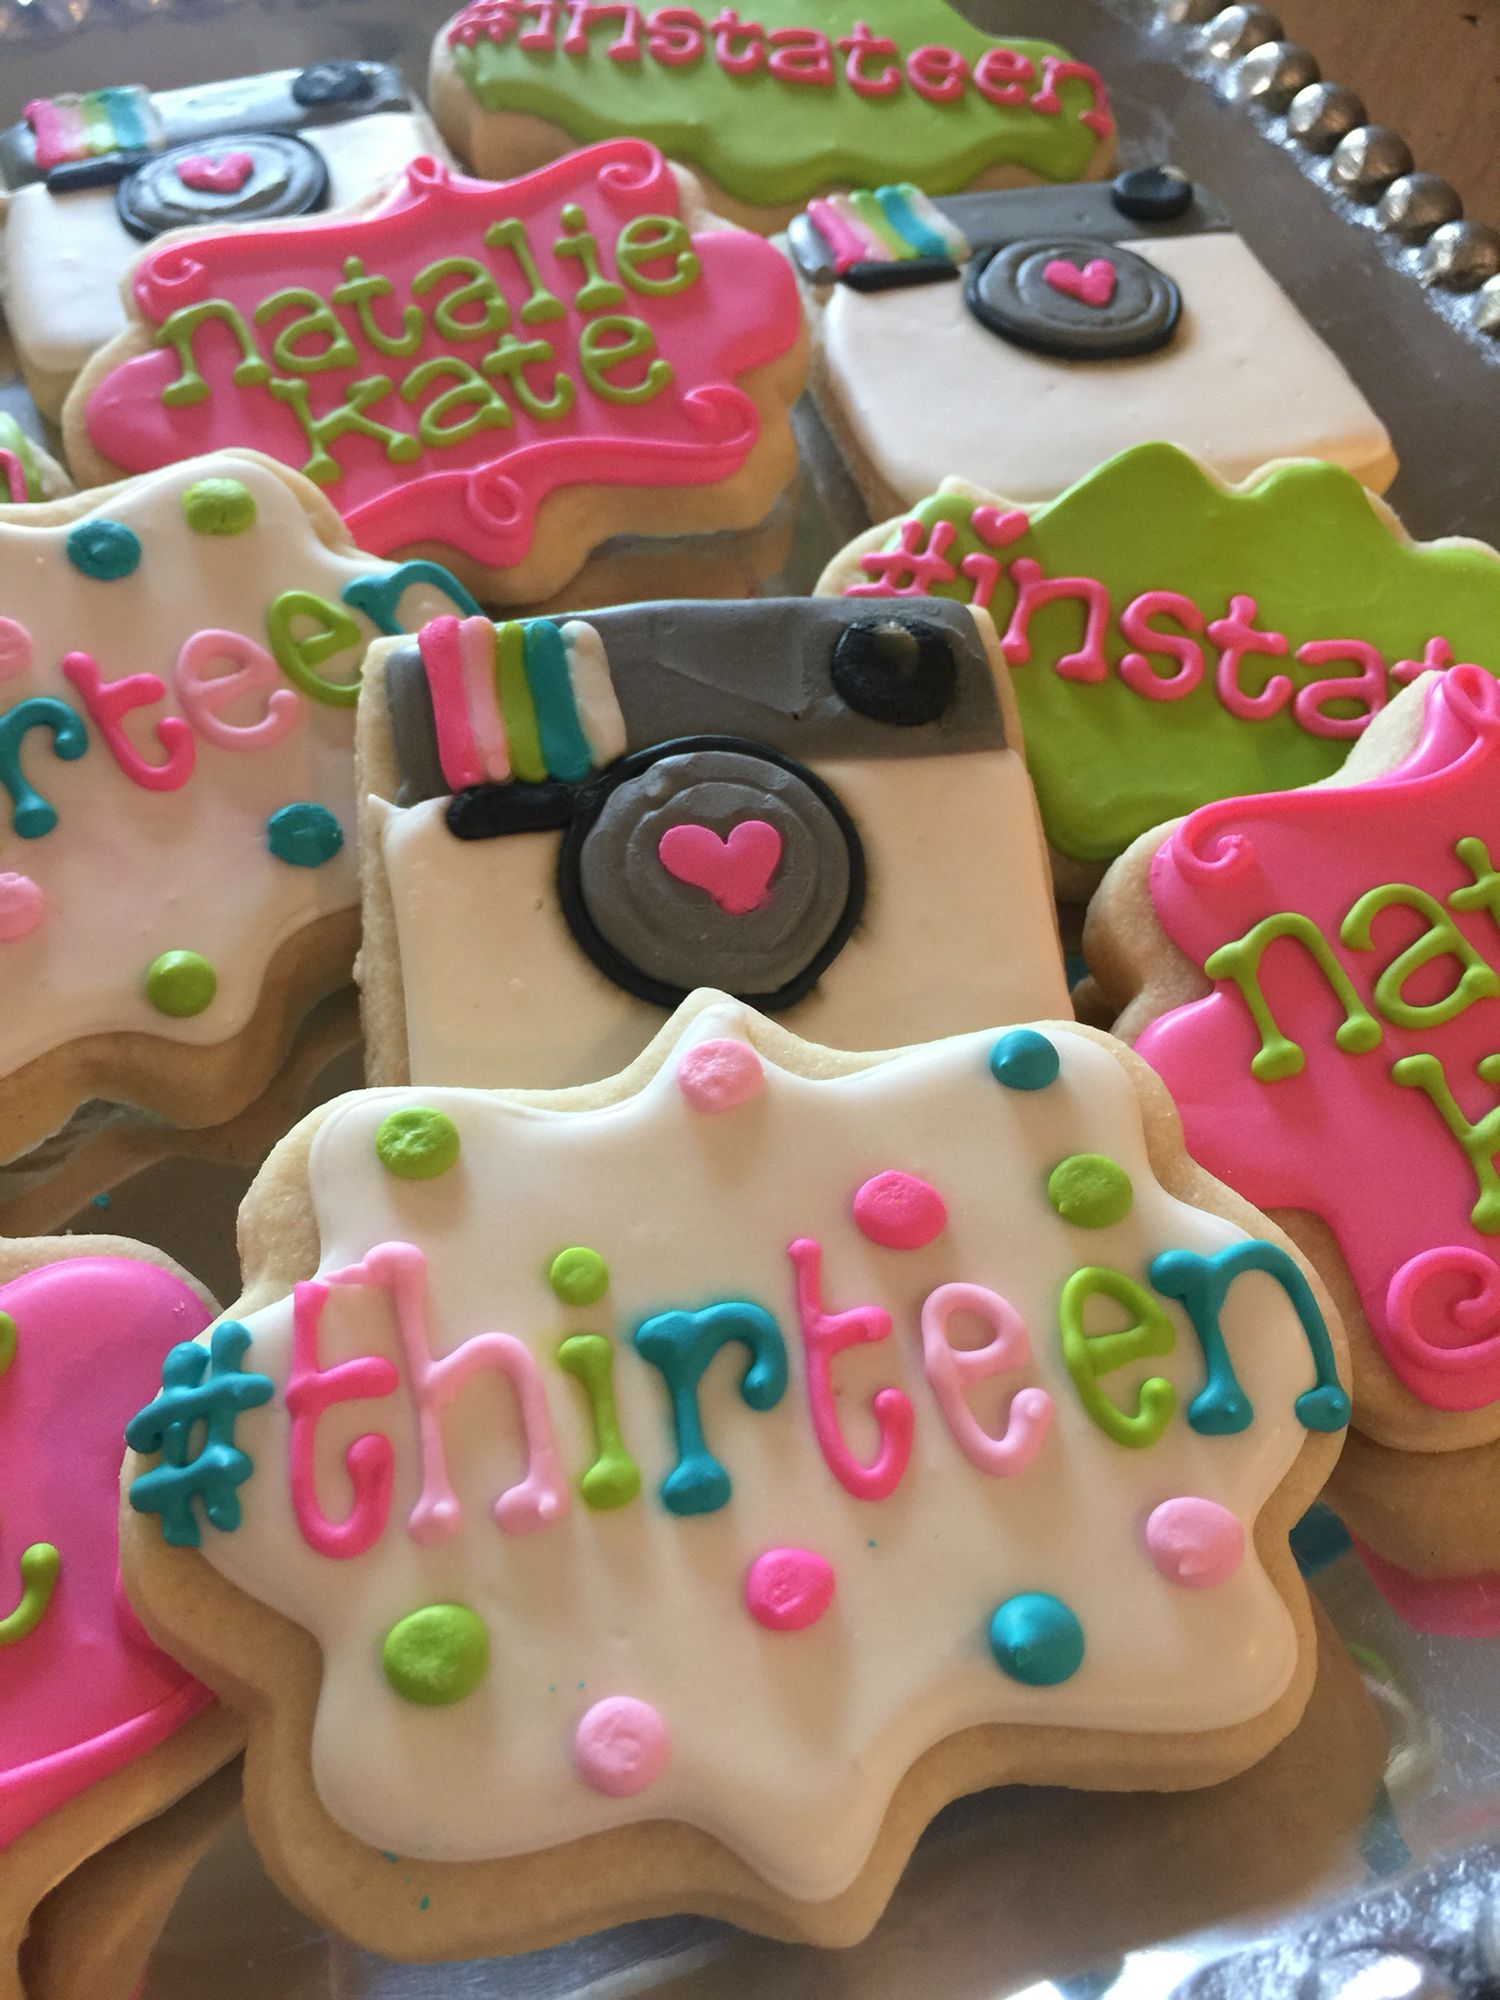 13Th Birthday, Cookies, Boards, Biscuits, Sugar, Biscuit, Biscotti, Cookie